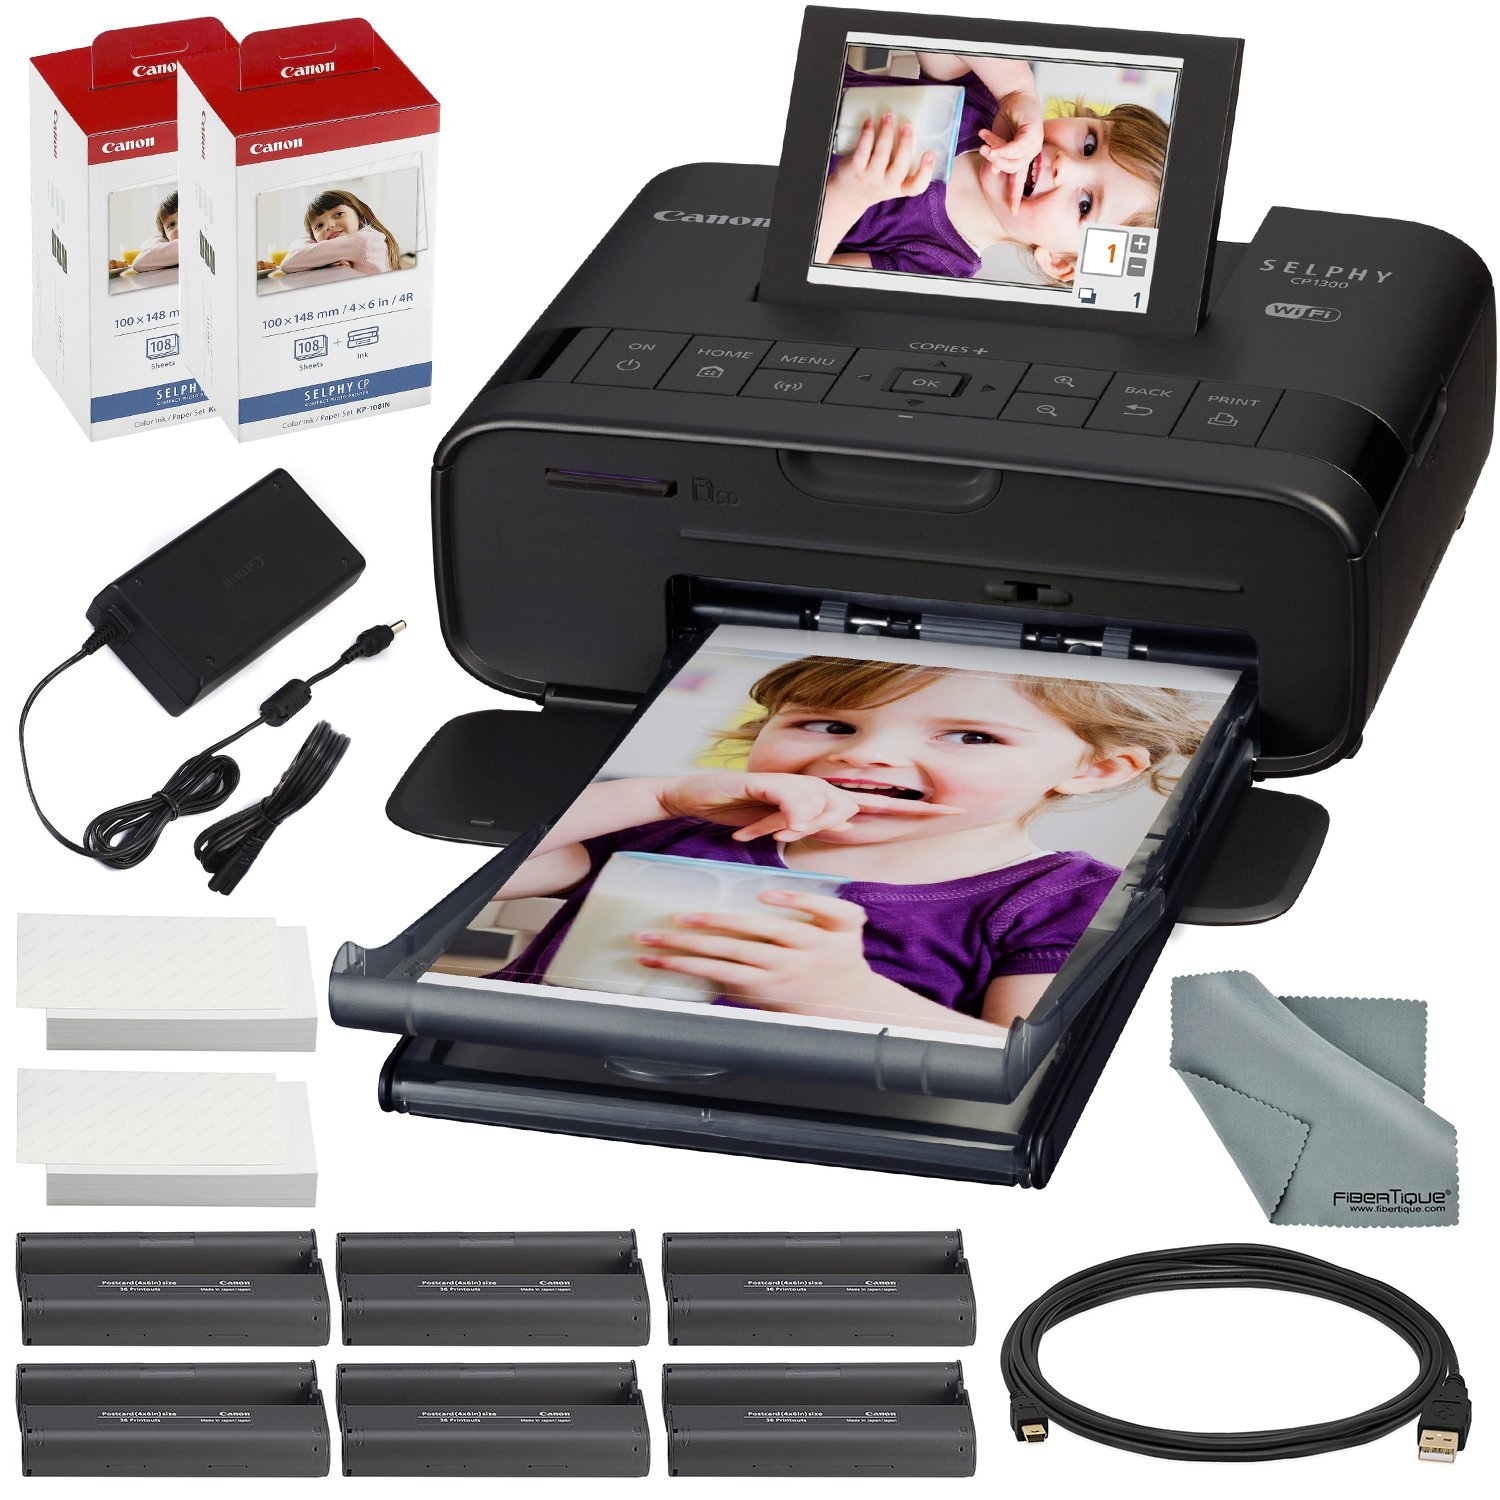 Canon SELPHY CP1300 Compact Photo Printer (Black) with WiFi and Accessory Bundle w/2X Canon Color Ink and Paper Set